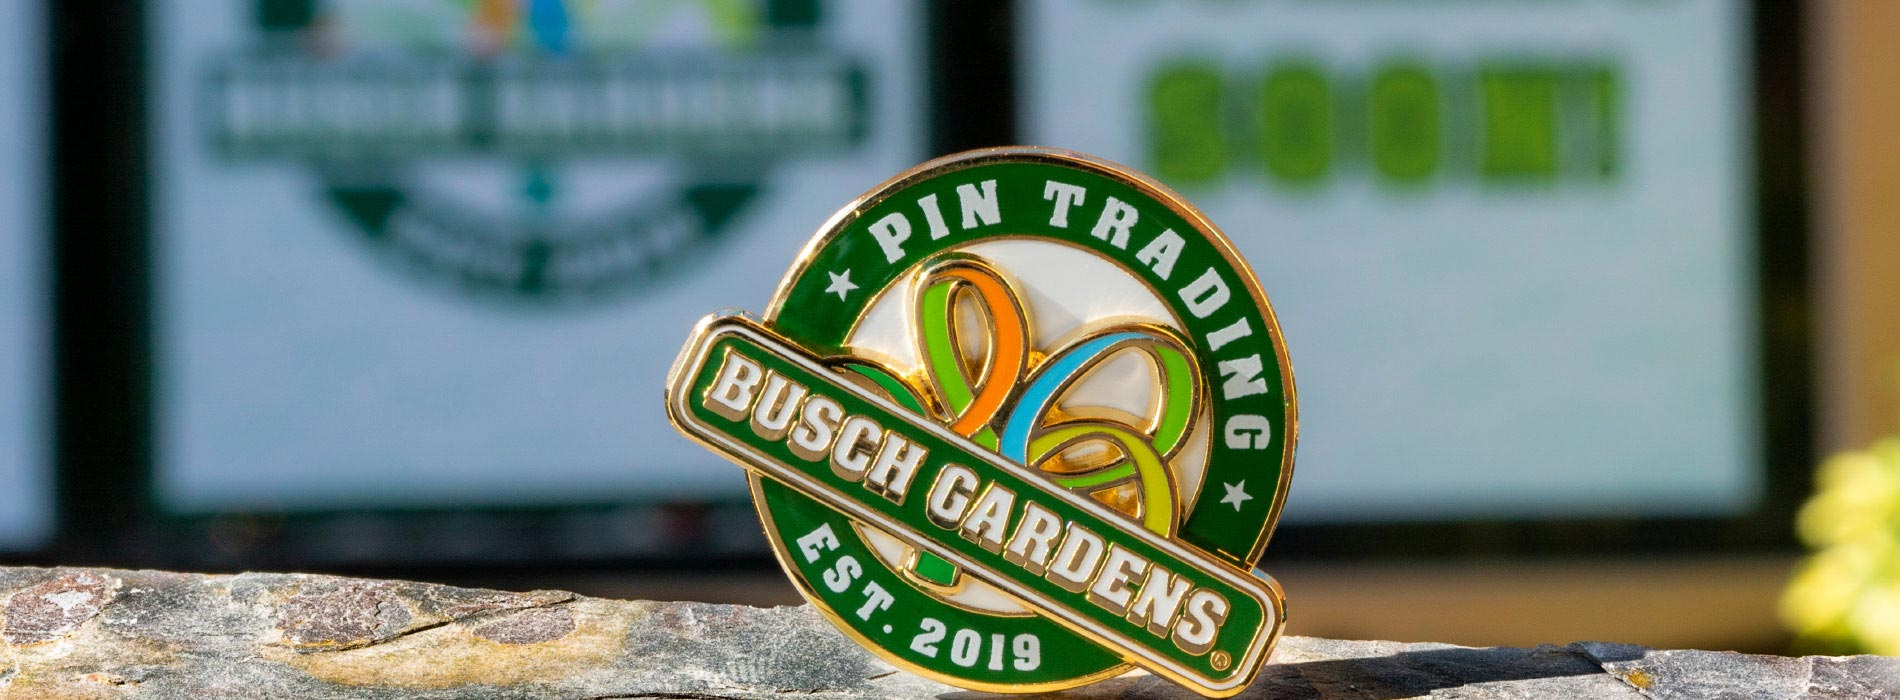 Participate in Pin Trading at Busch Gardens Tampa Bay